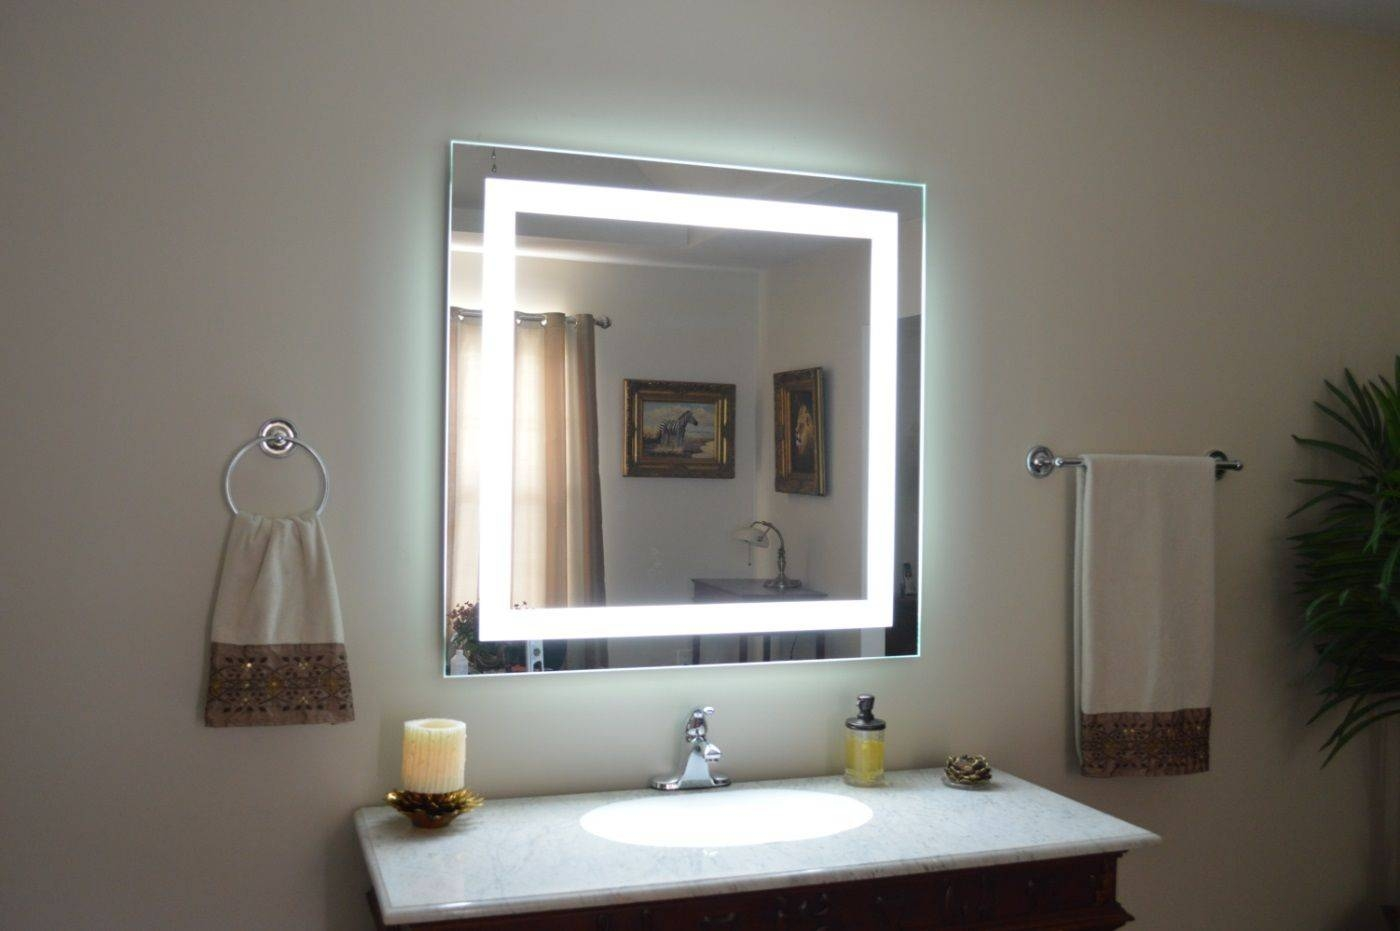 Wall Vanity Mirror With Lights 99 Cool Ideas For Interesting inside Interesting Wall Mirrors (Image 25 of 25)